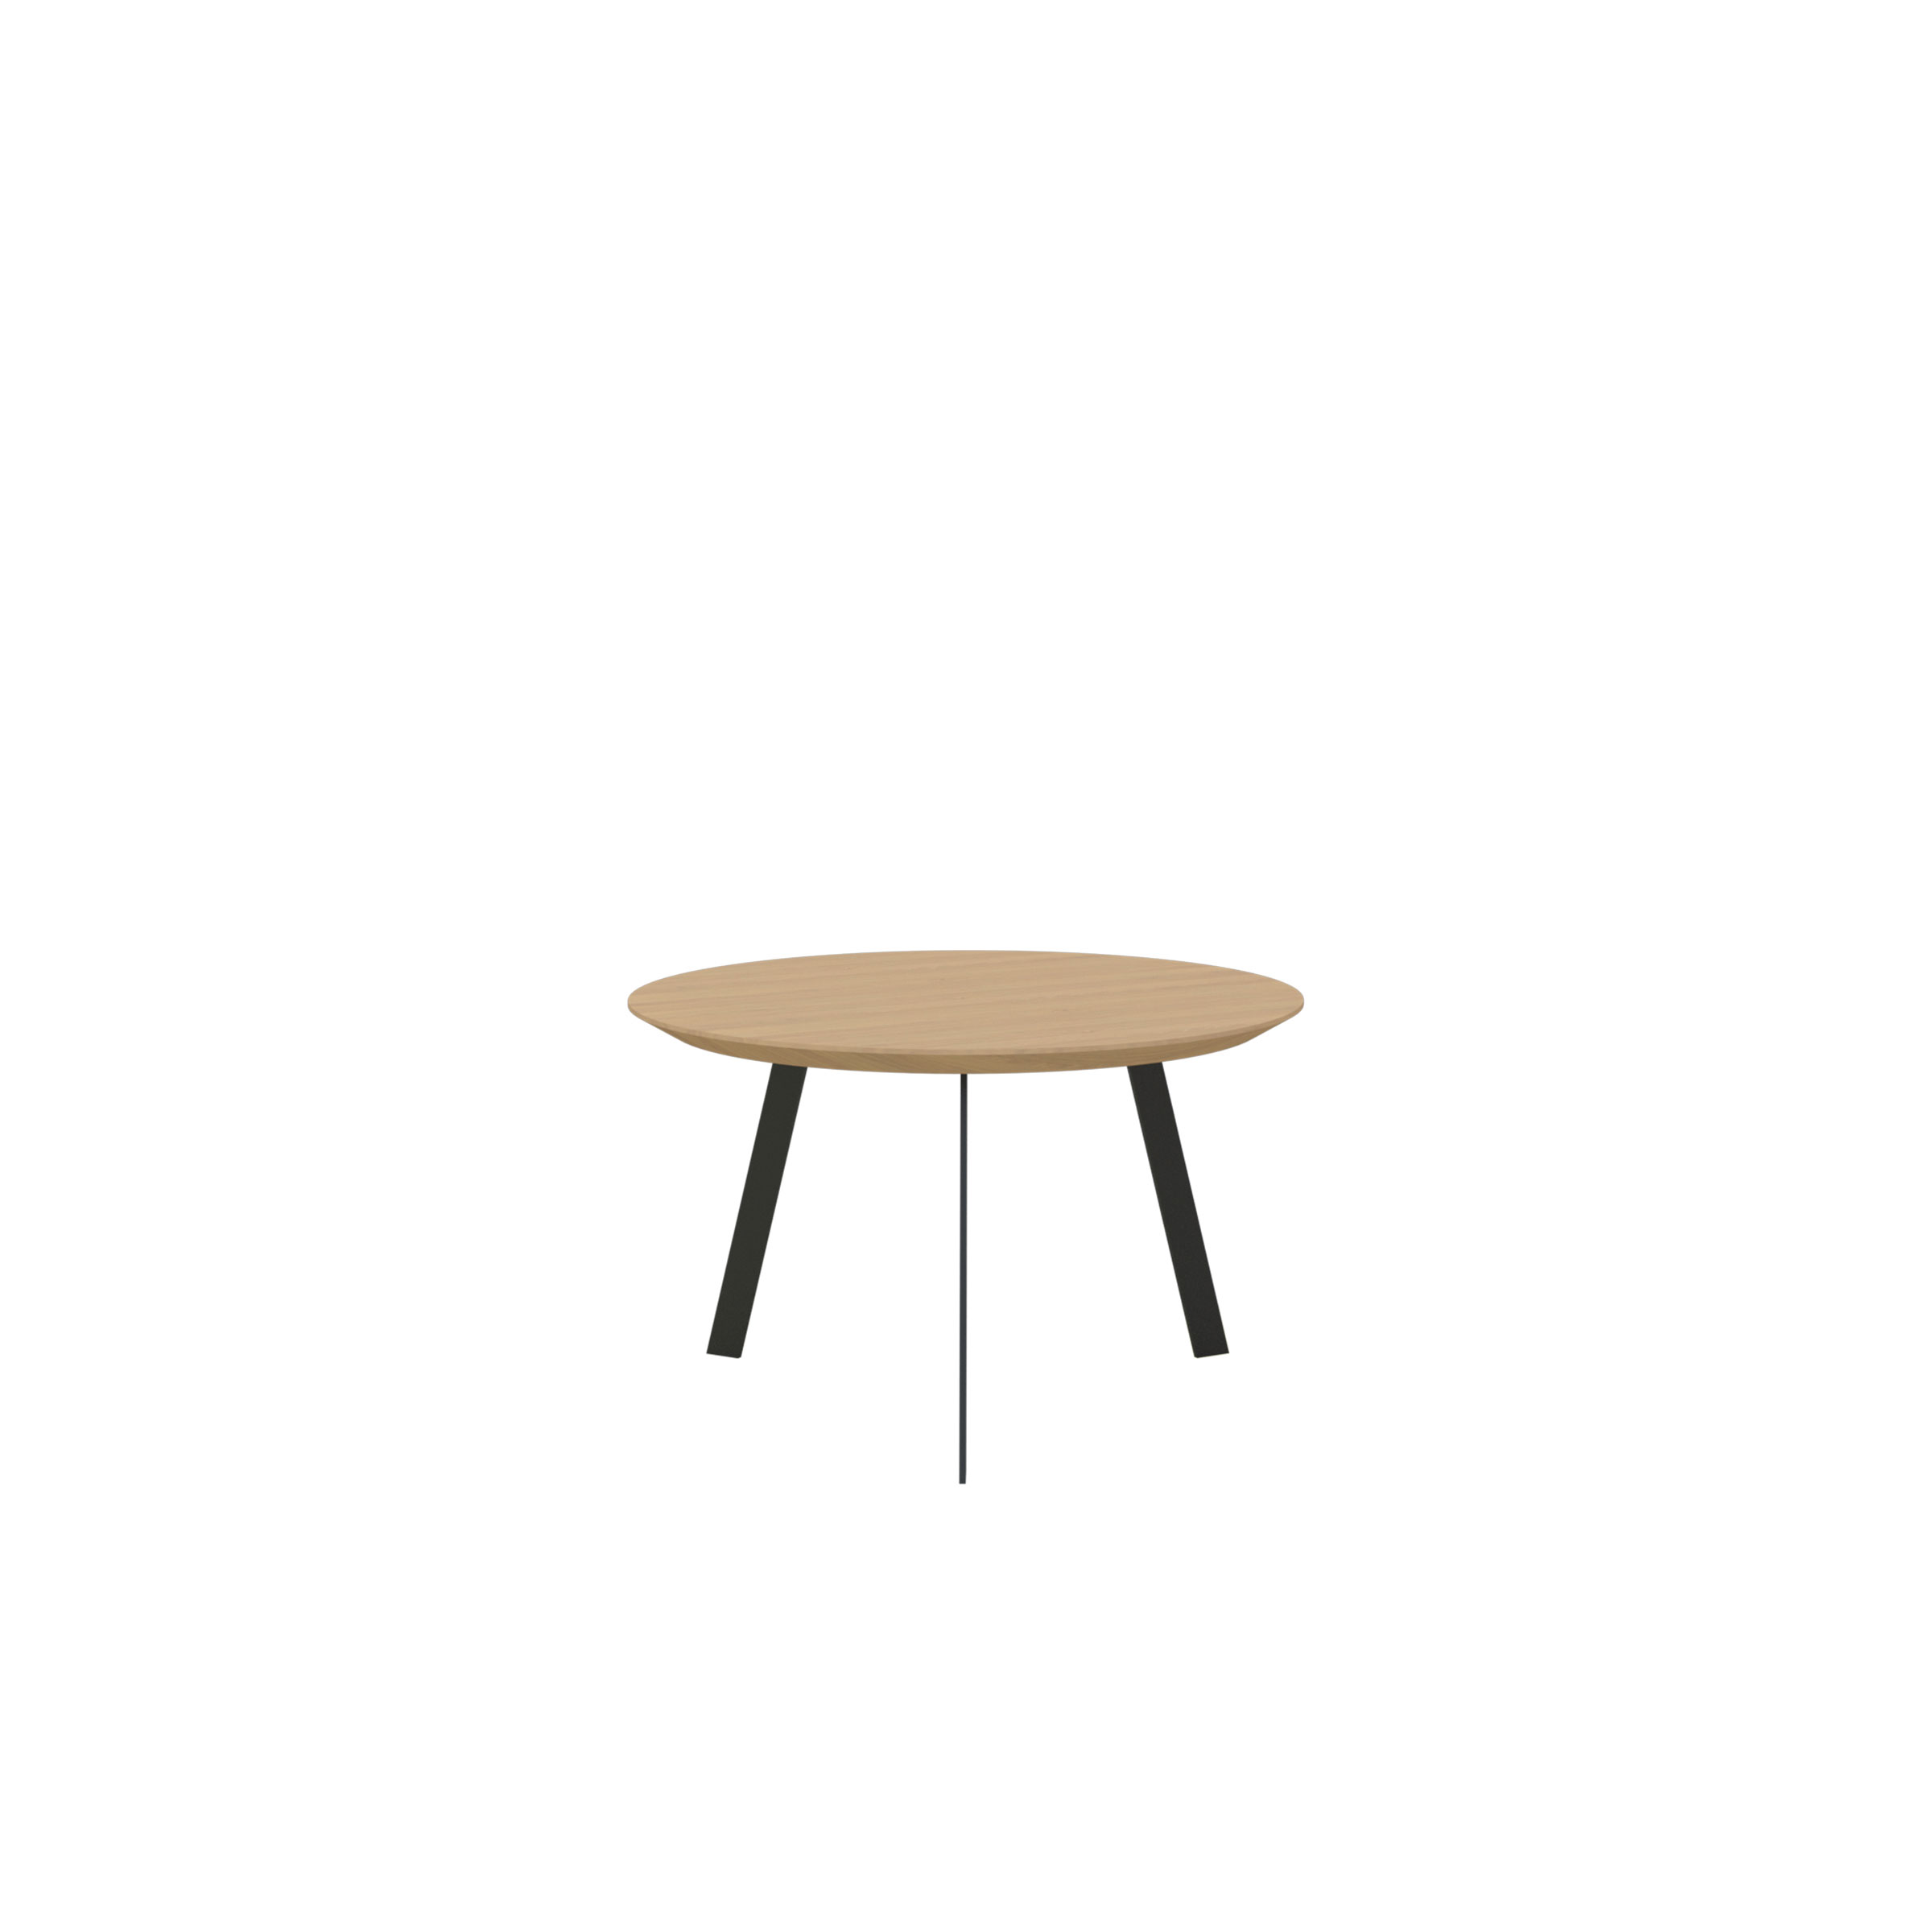 New Co Coffee Table 70 Rond